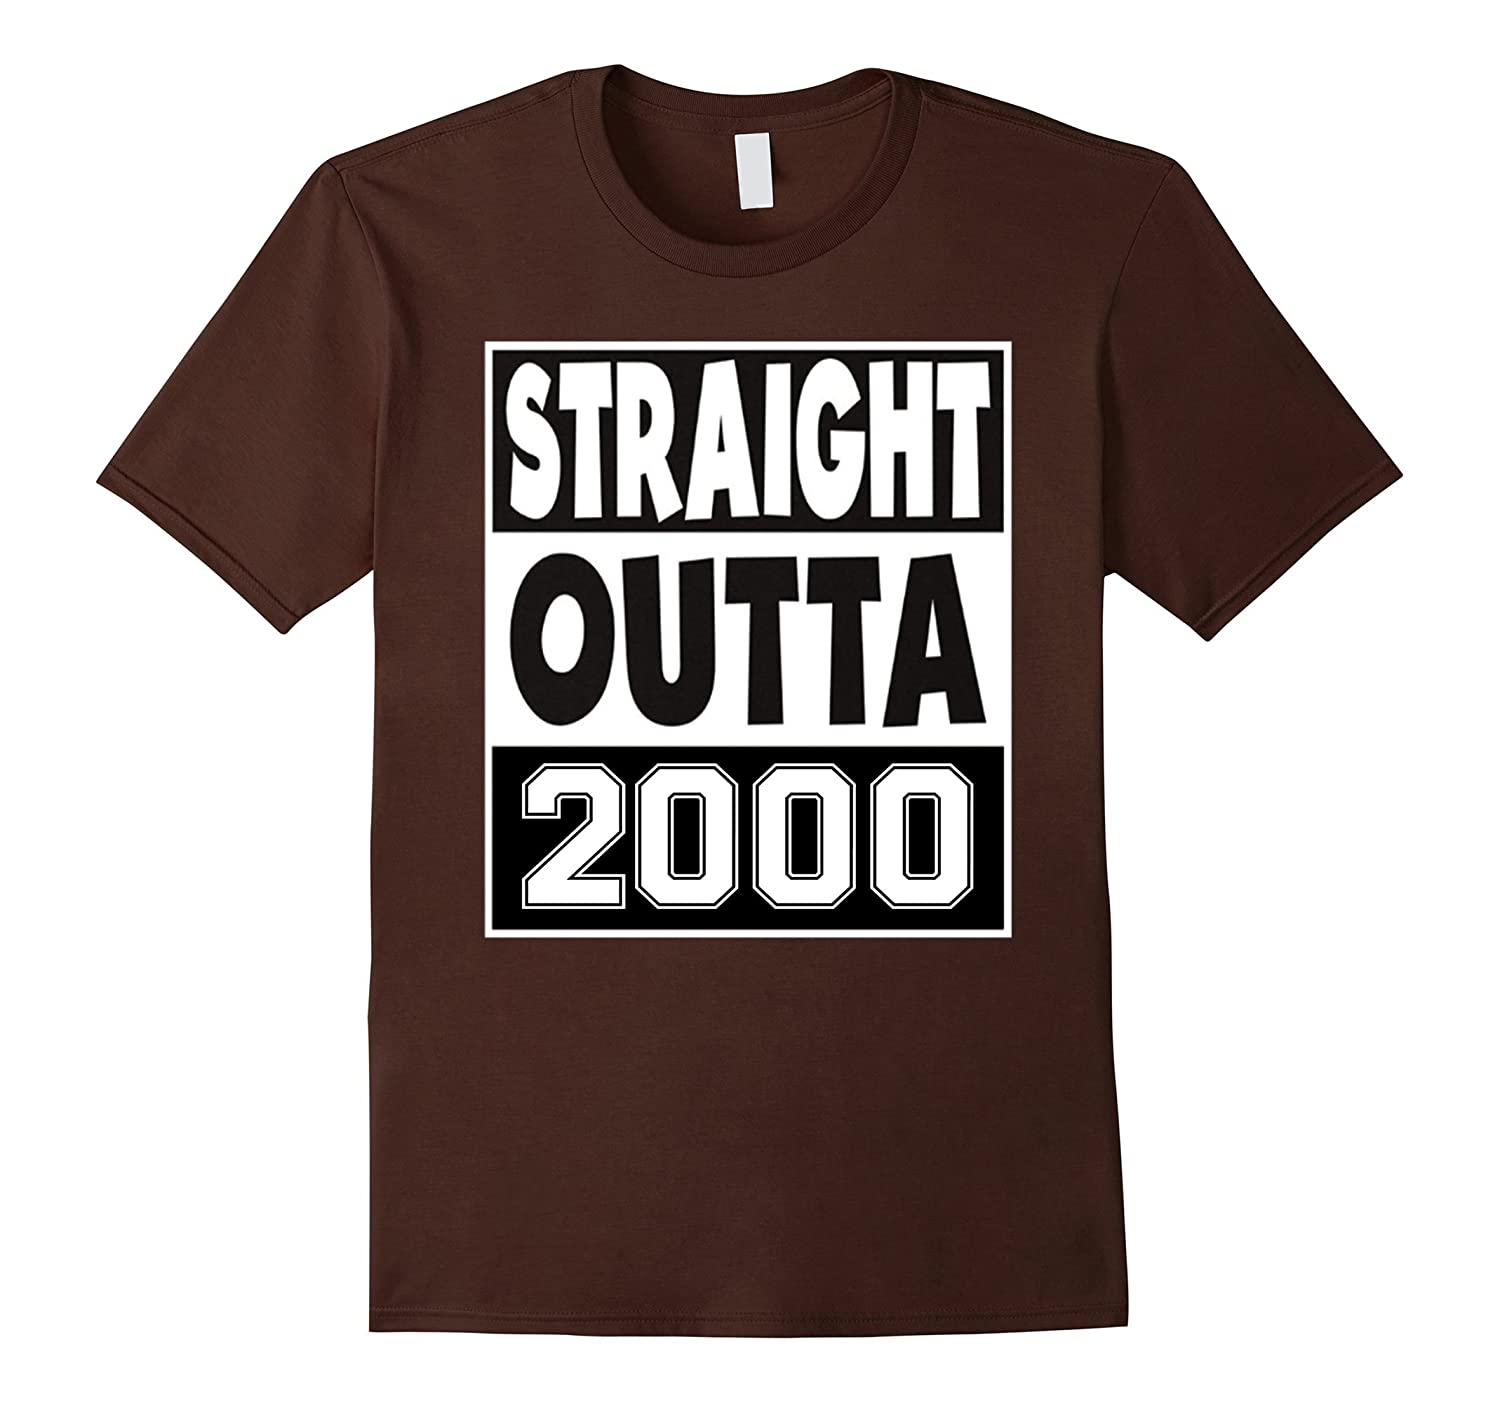 16th Birthday Gift TShirt Streight Outt 2000 For men/women B-Art